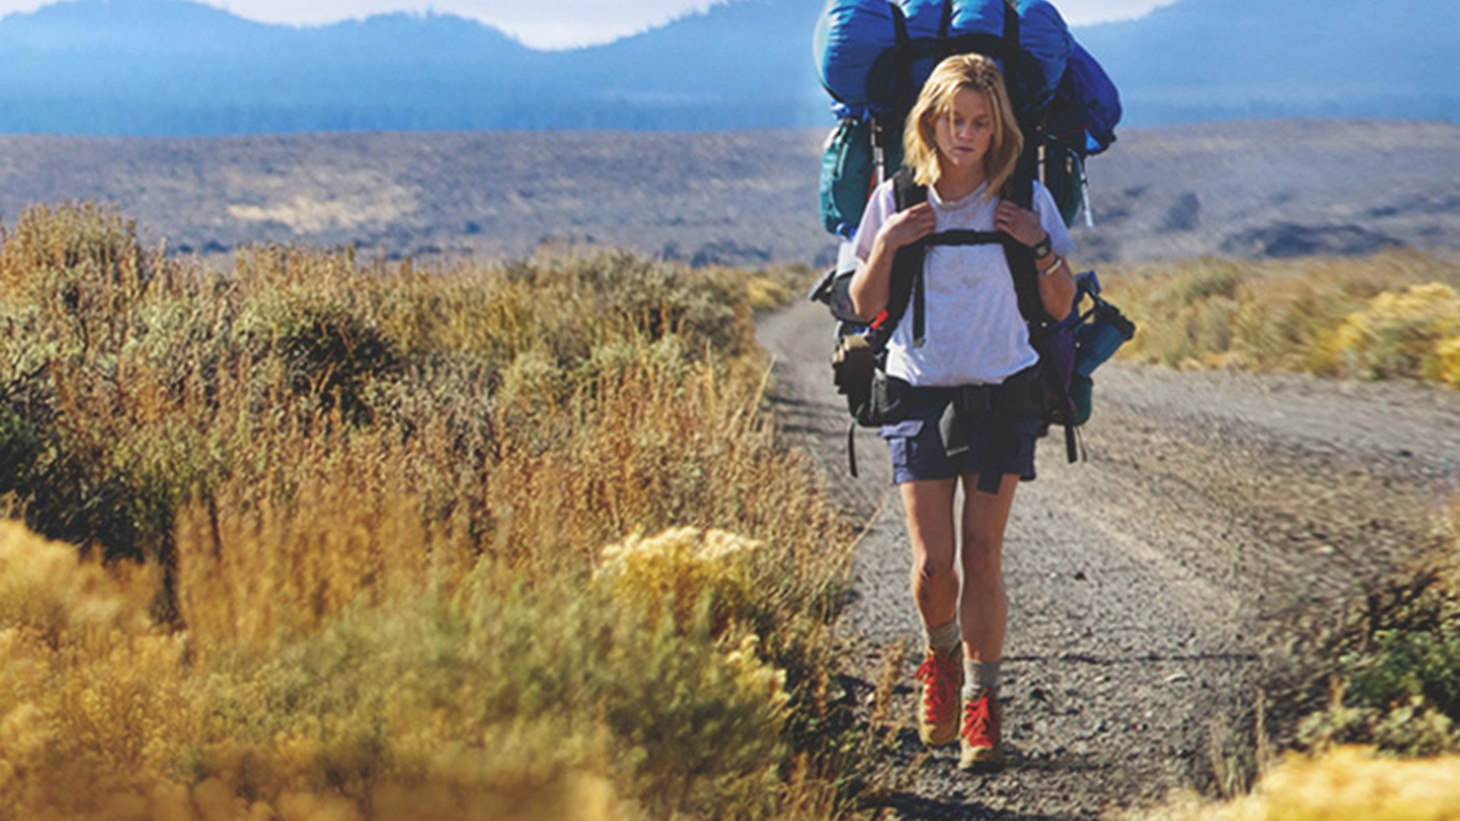 Reese Witherspoon is the angry, wounded soul ofWild. She commands the screen throughout her heroine's 1,100-mile journey of self-discovery and self-repair, on foot and mostly alone, from the Mojave desert to northern Oregon along the Pacific Crest Trail.